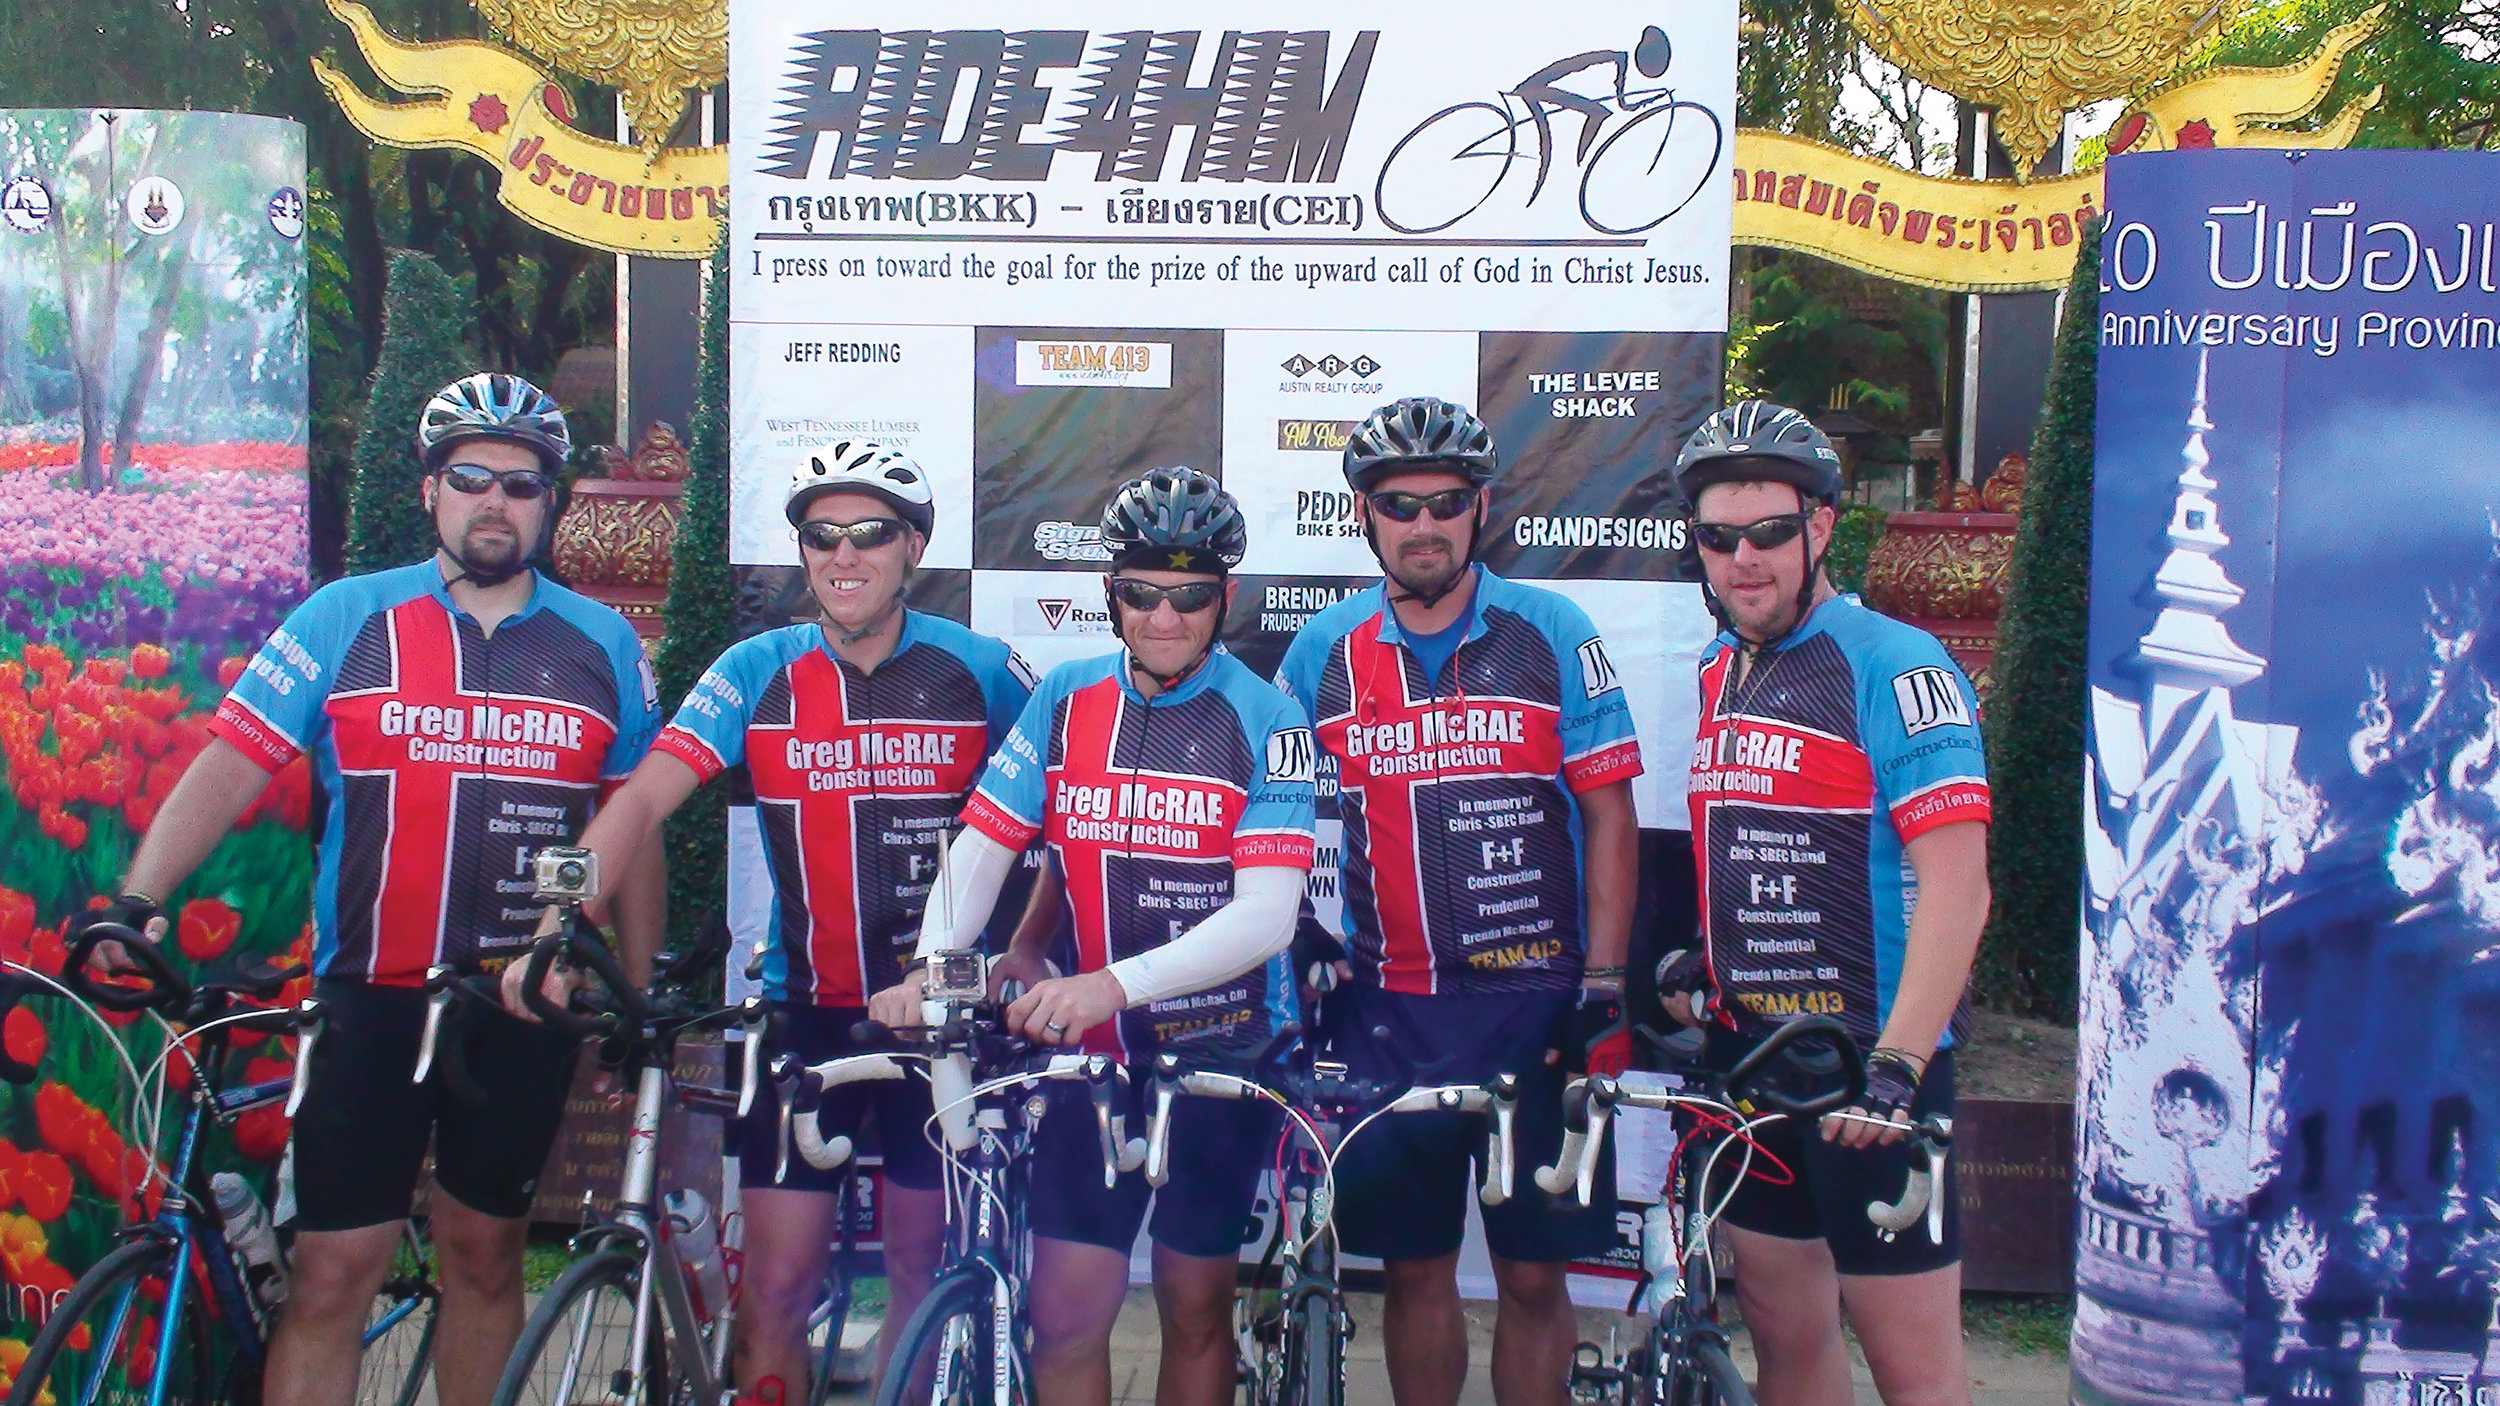 Bobby Cavette, center, and the Ride4Him team shown on their 2018 Tour of Hope fundraising ride for Chiang Rai Children's Home.